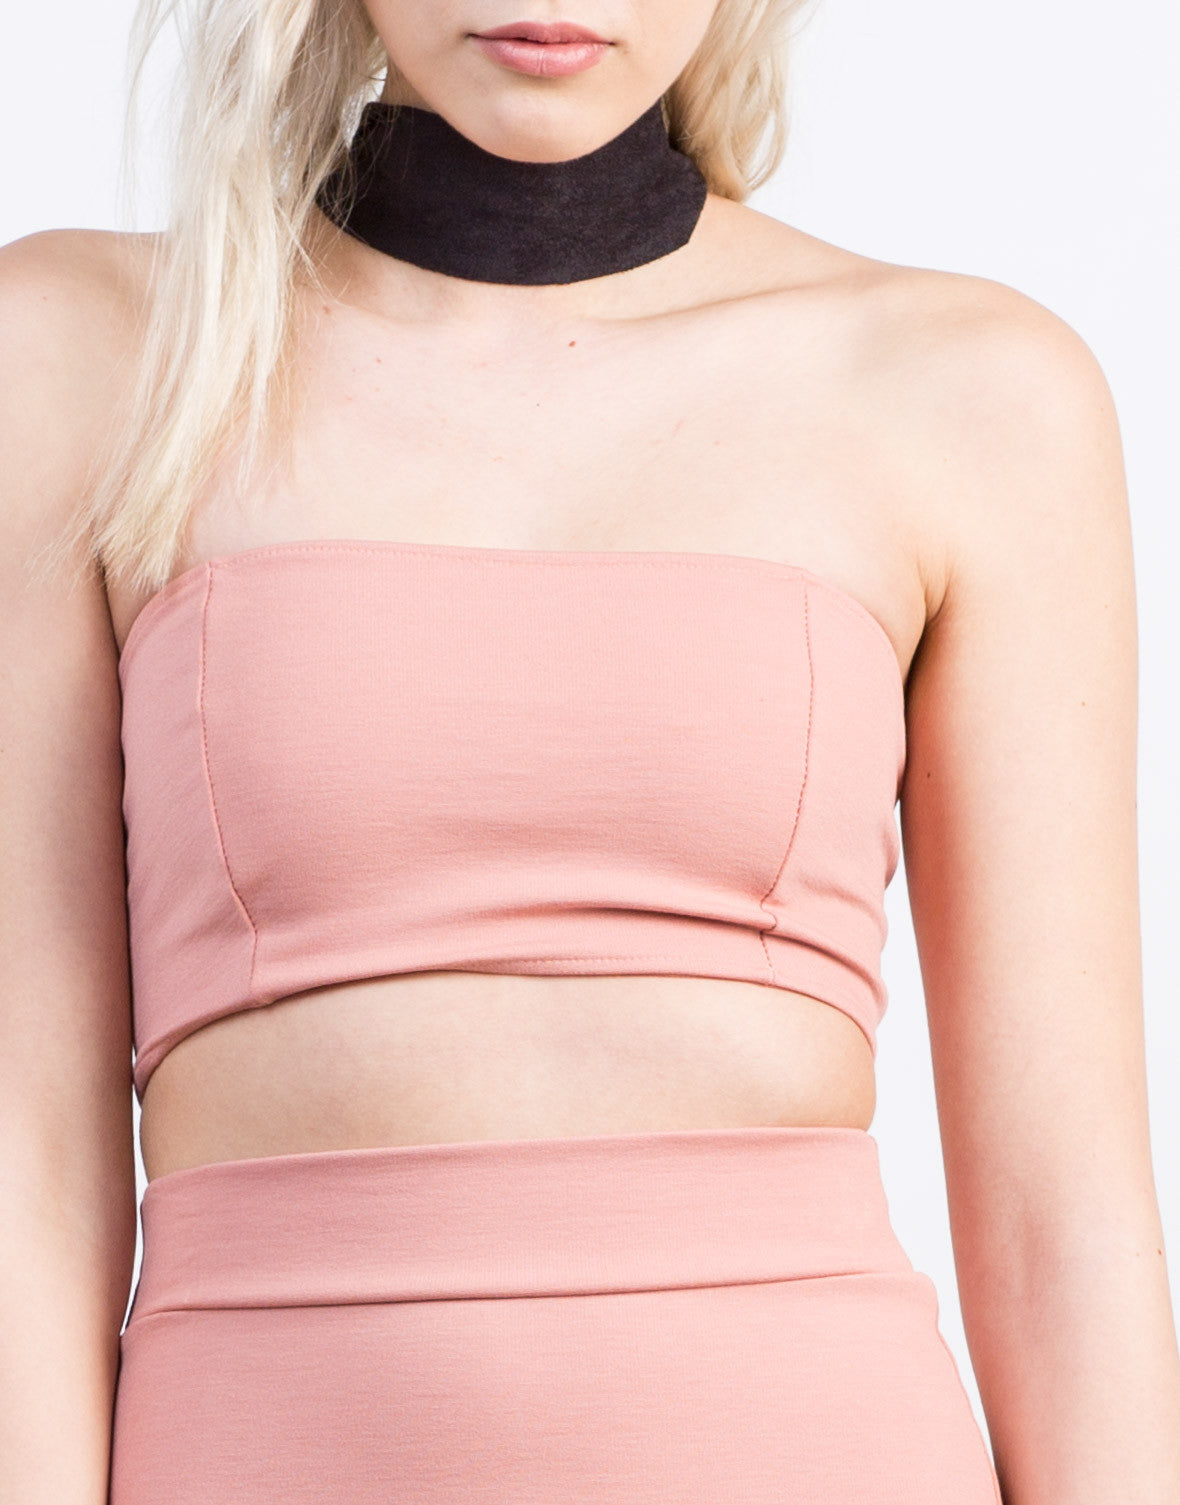 Detail of Zipped Up Crop Top